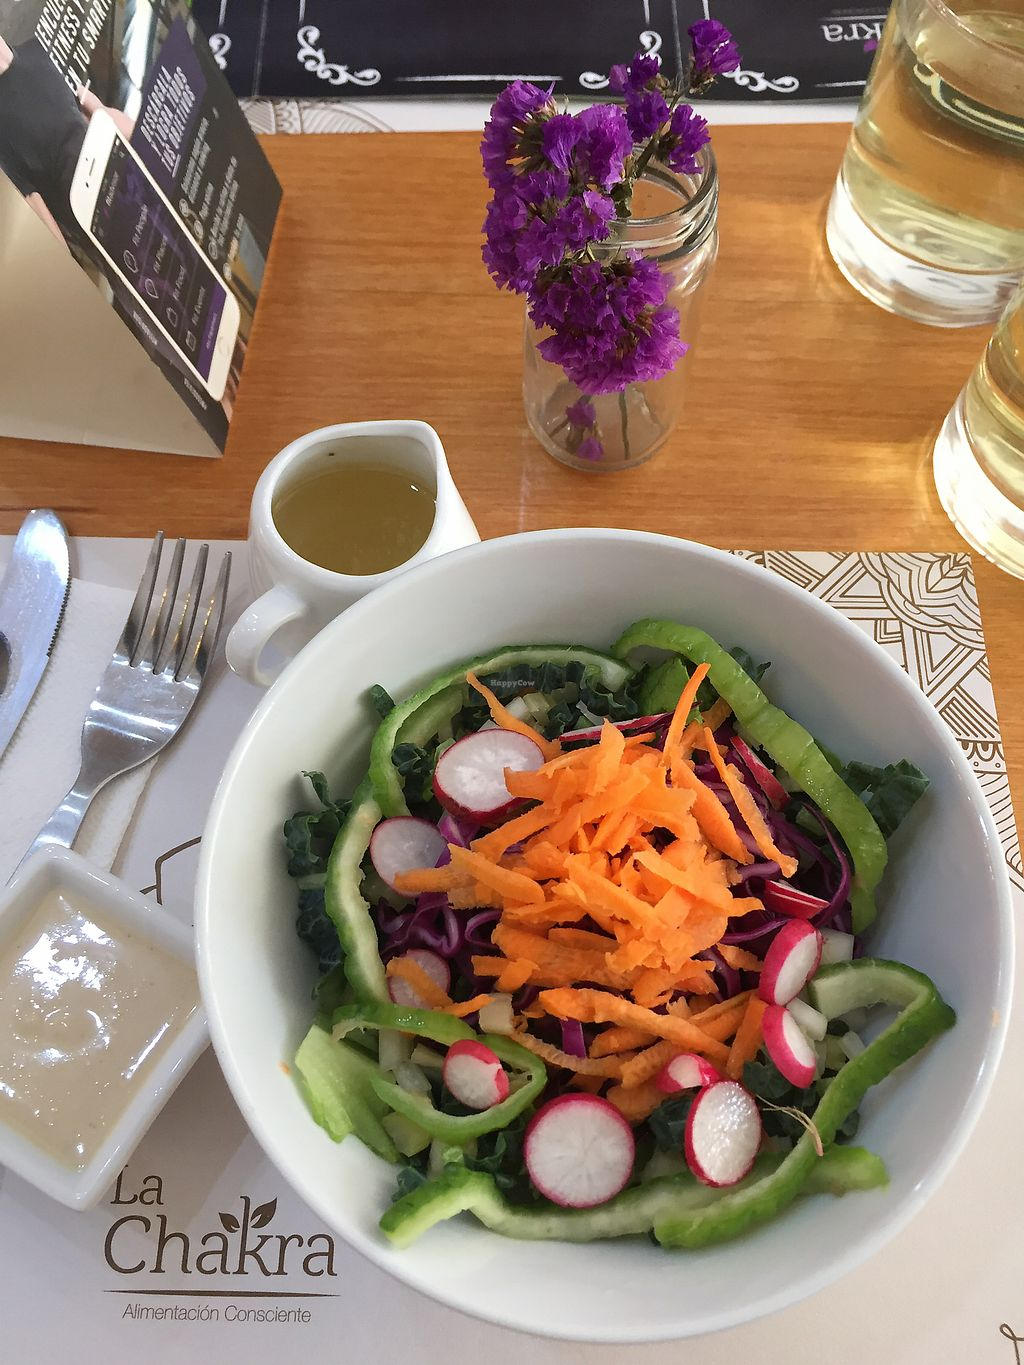 """Photo of CLOSED: La Chakra  by <a href=""""/members/profile/Dianebg"""">Dianebg</a> <br/>Raw salad and dressing  <br/> November 7, 2017  - <a href='/contact/abuse/image/58930/323104'>Report</a>"""